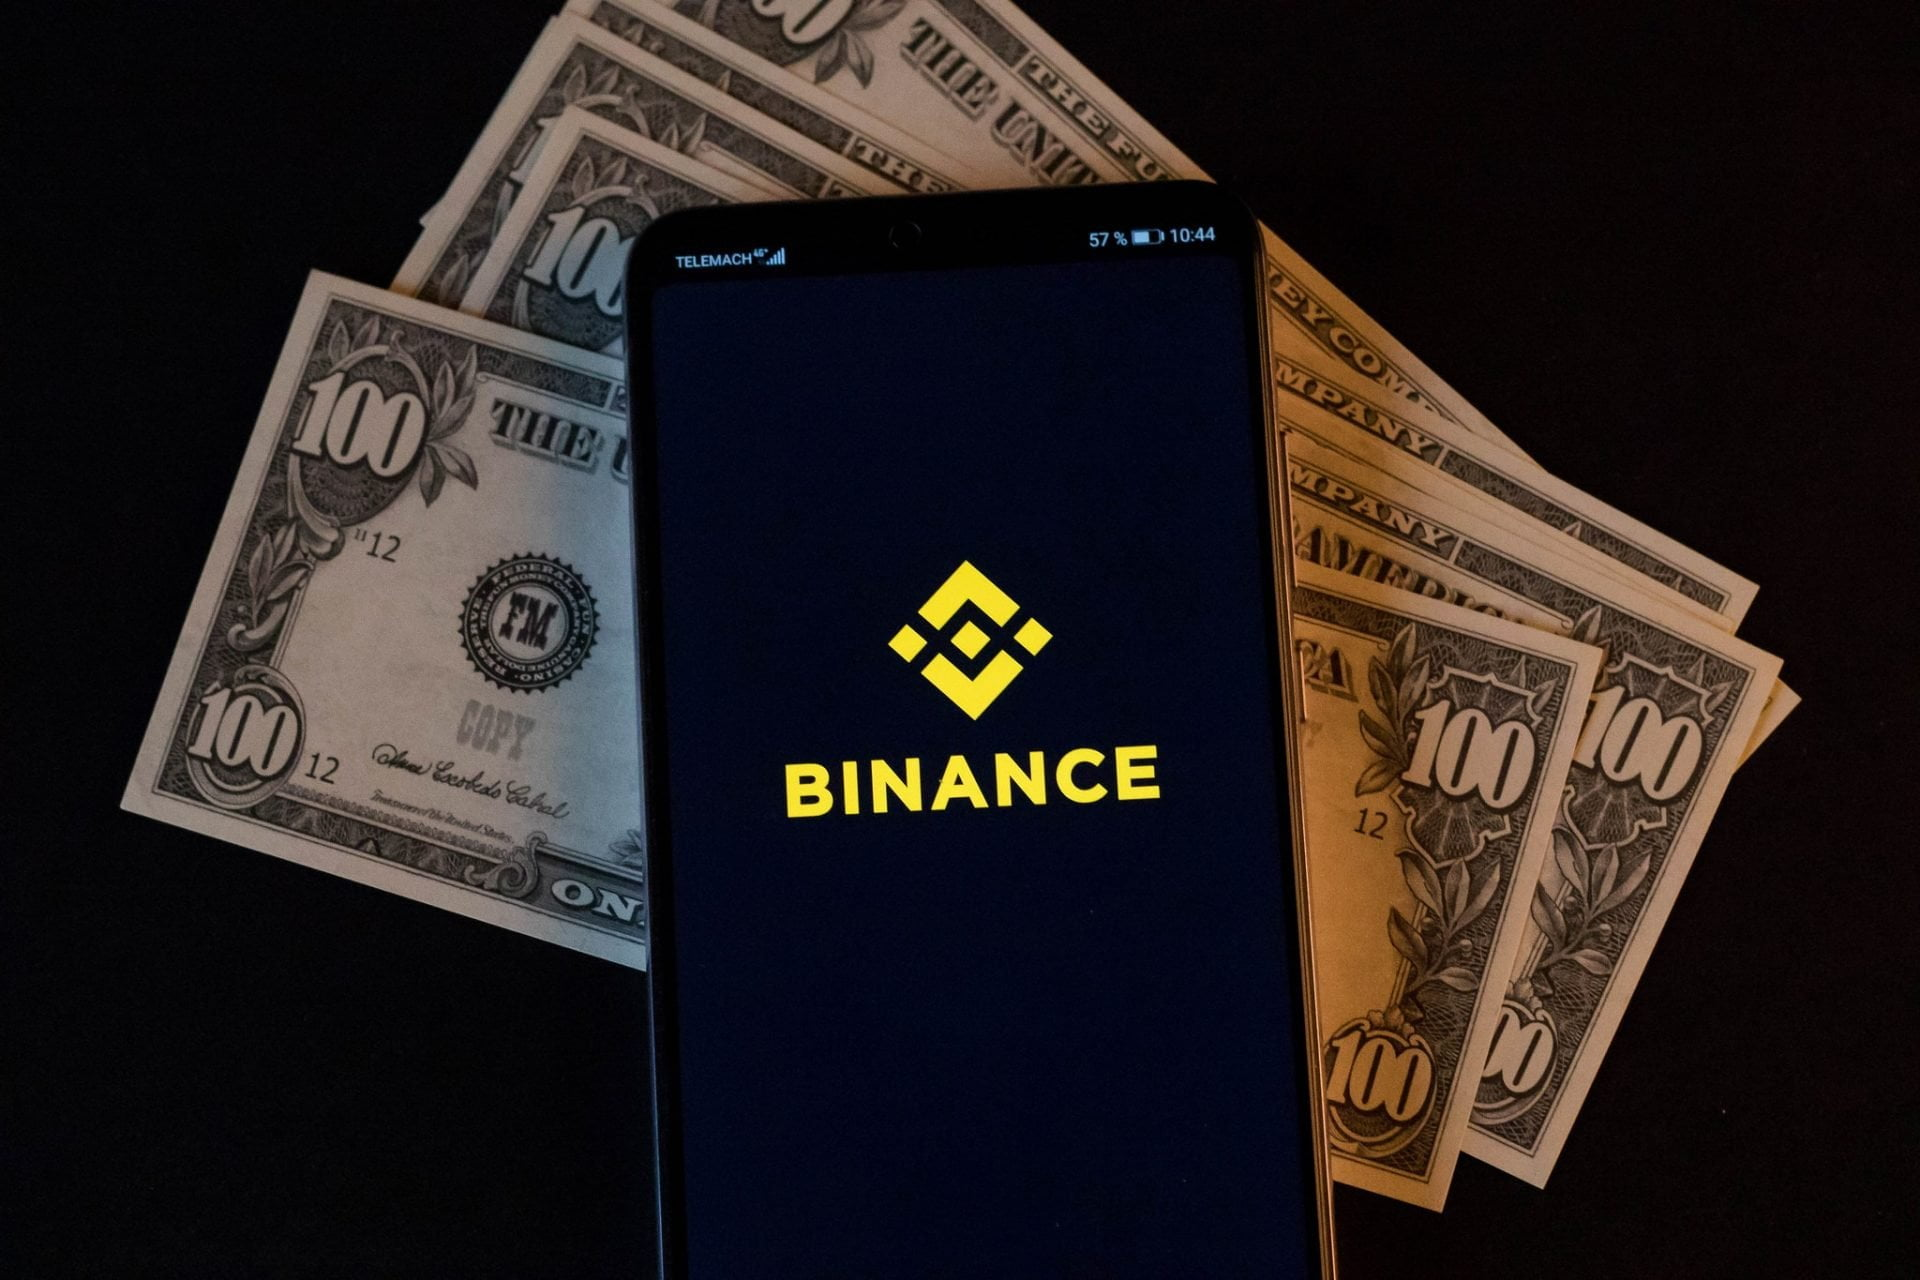 Binance Ships Out Crypto Debit Cards, But in Limited Quantities 14